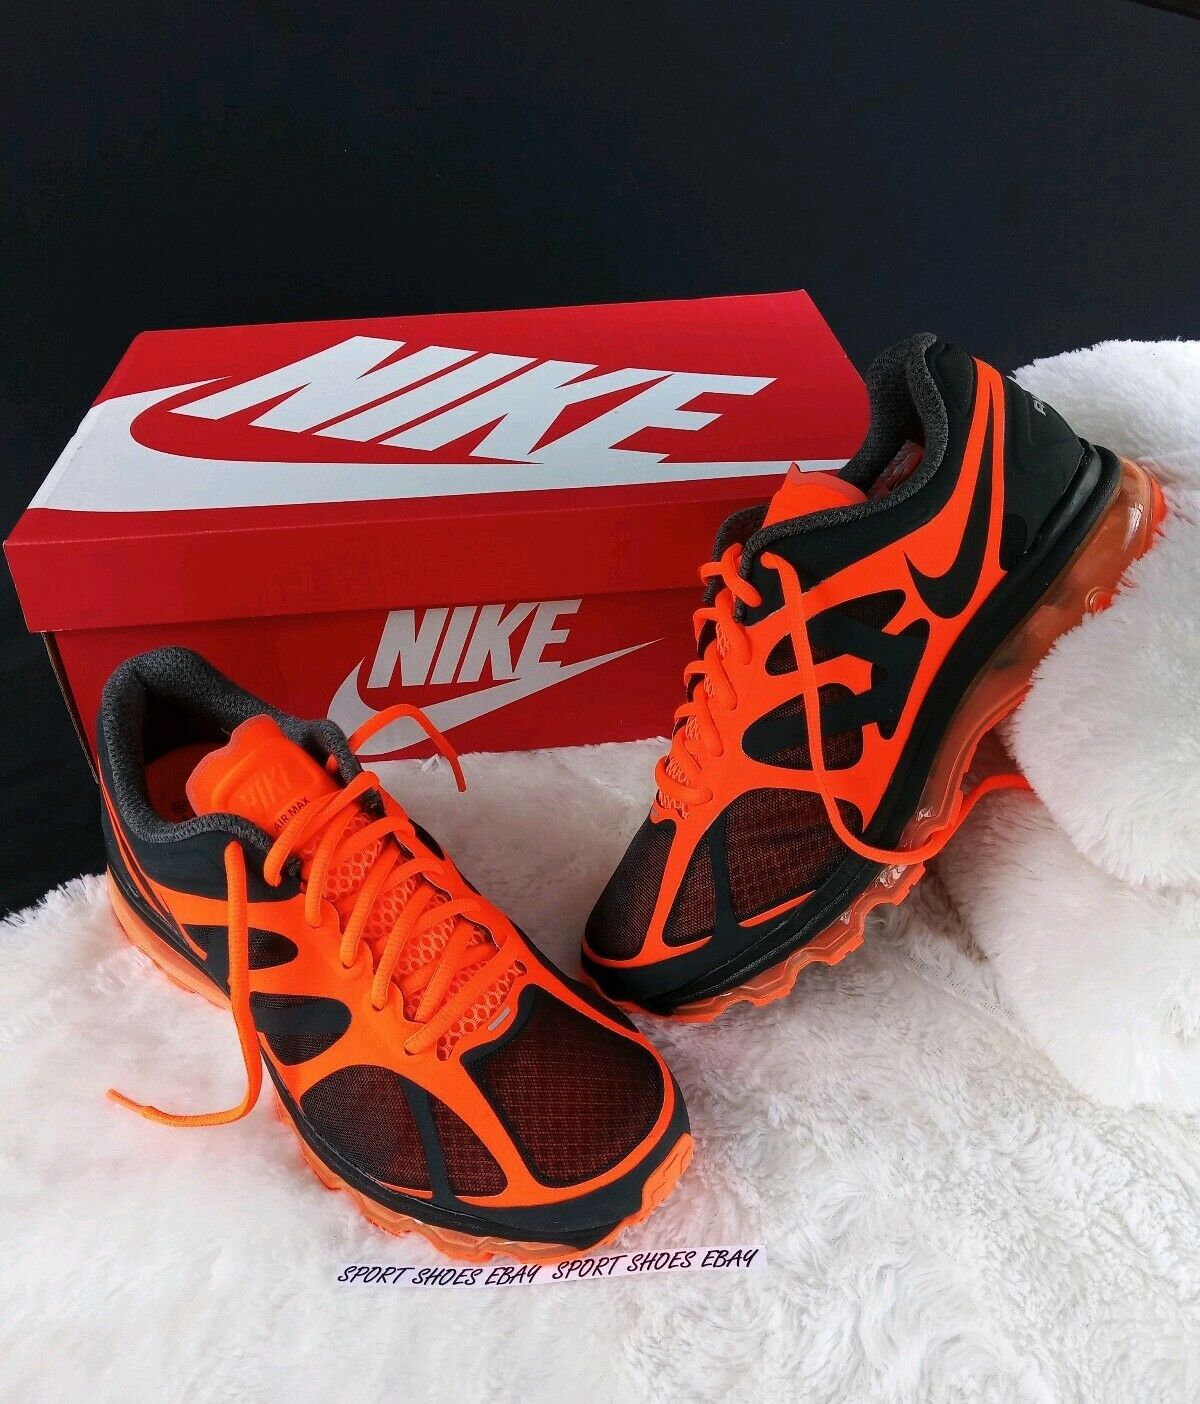 Size 8 men's Nike Air Max+ 2012 orange Black Athletic Running shoes casual